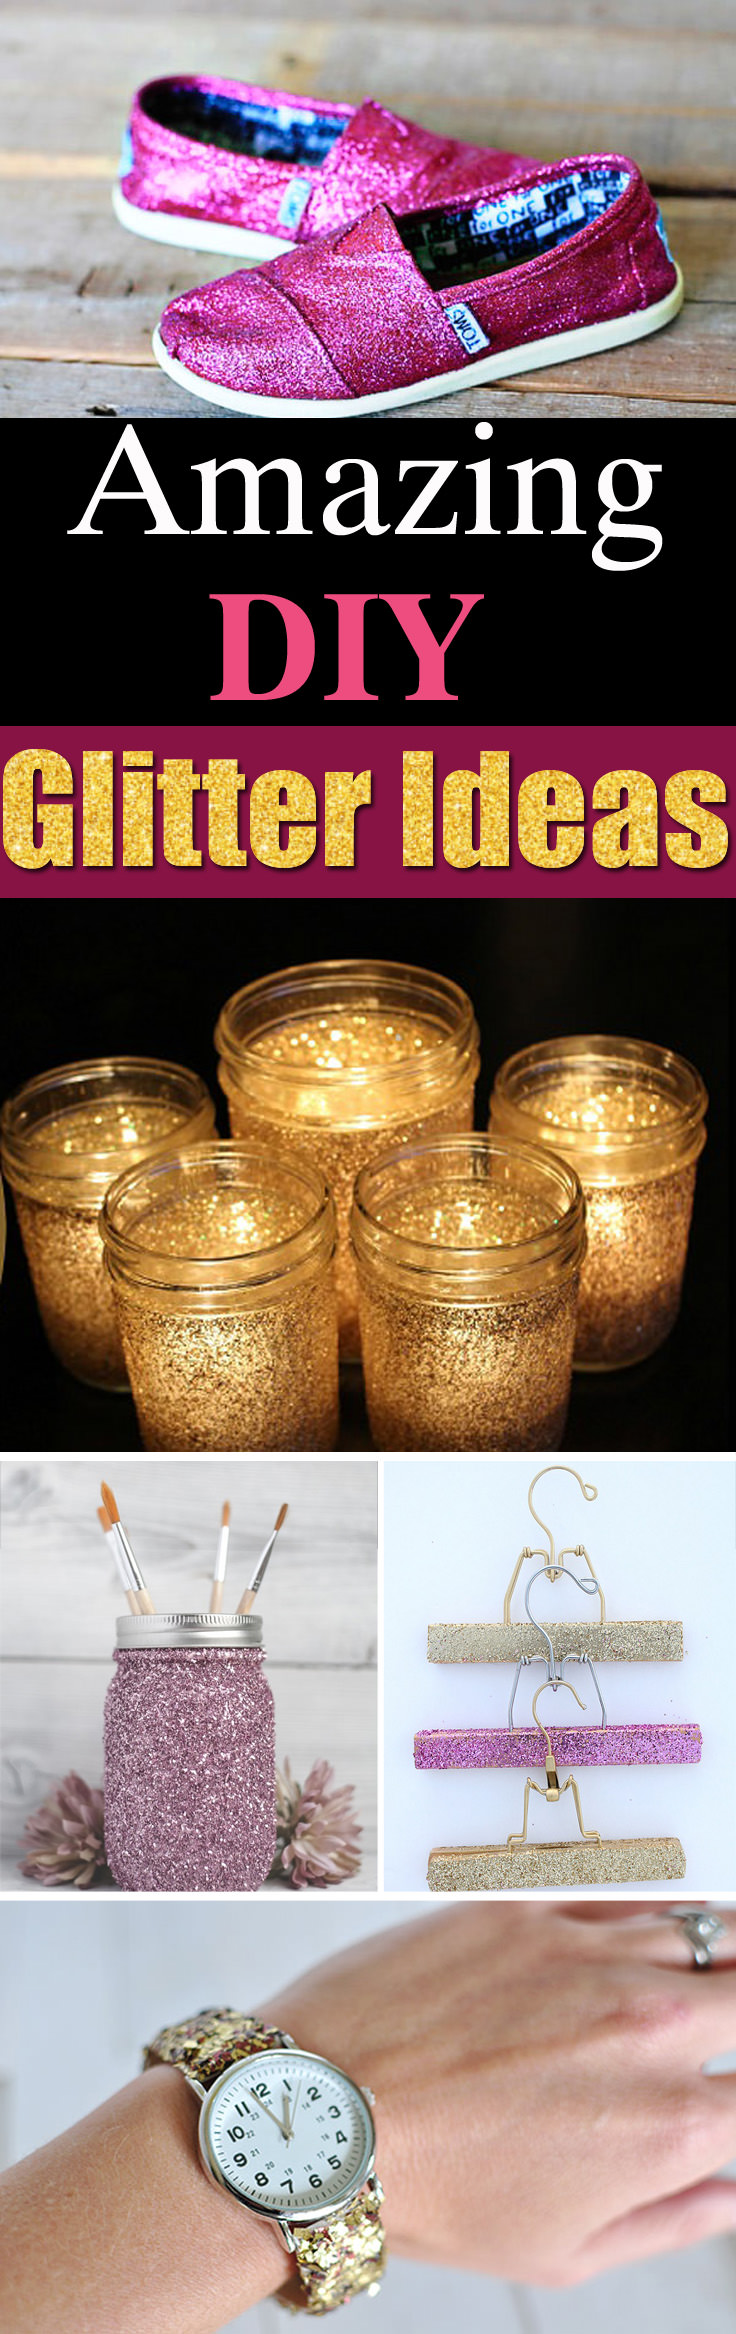 Add a touch of sparkle to your favorite items at home with these 25 Best DIY Glitter Ideas and Projects!